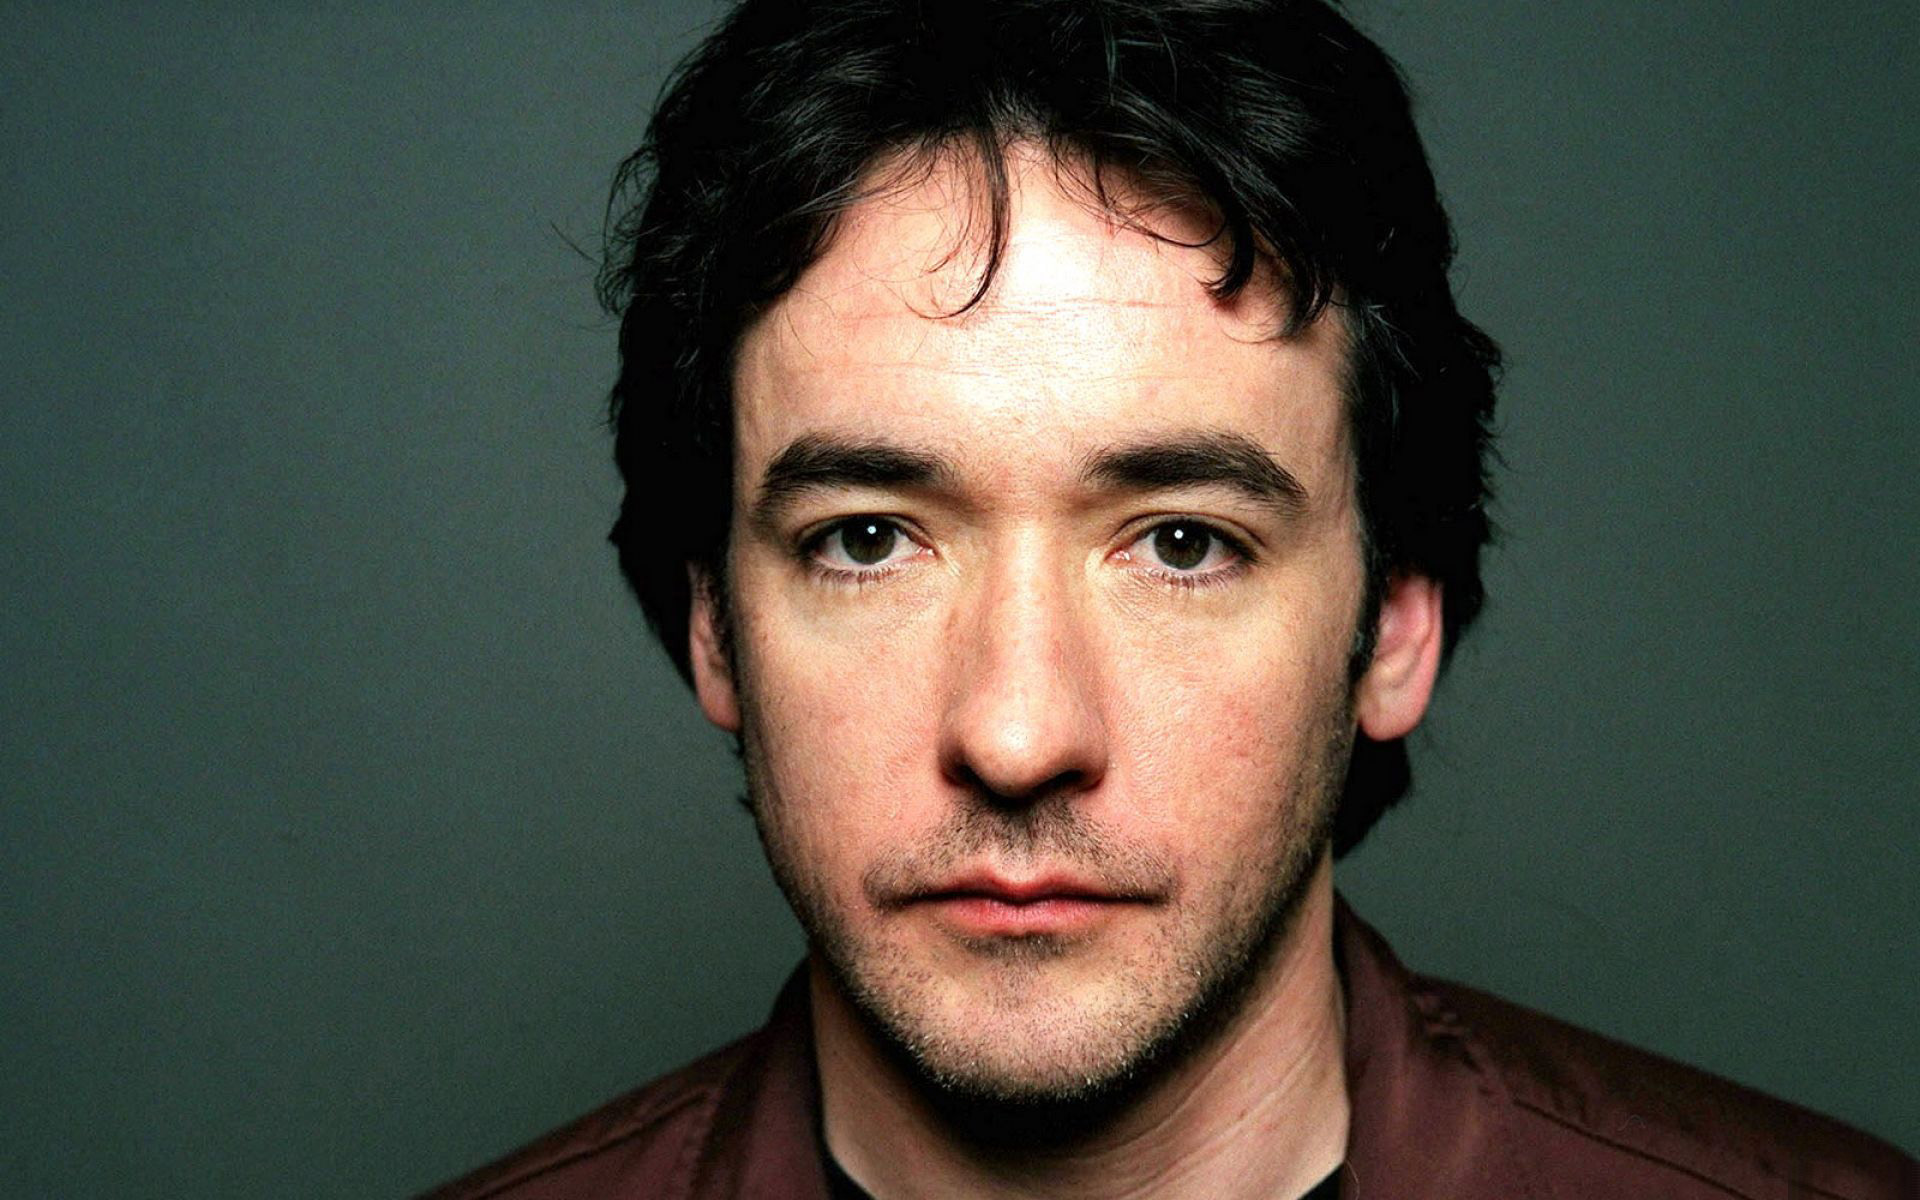 follow me on twitter @johncusack ...